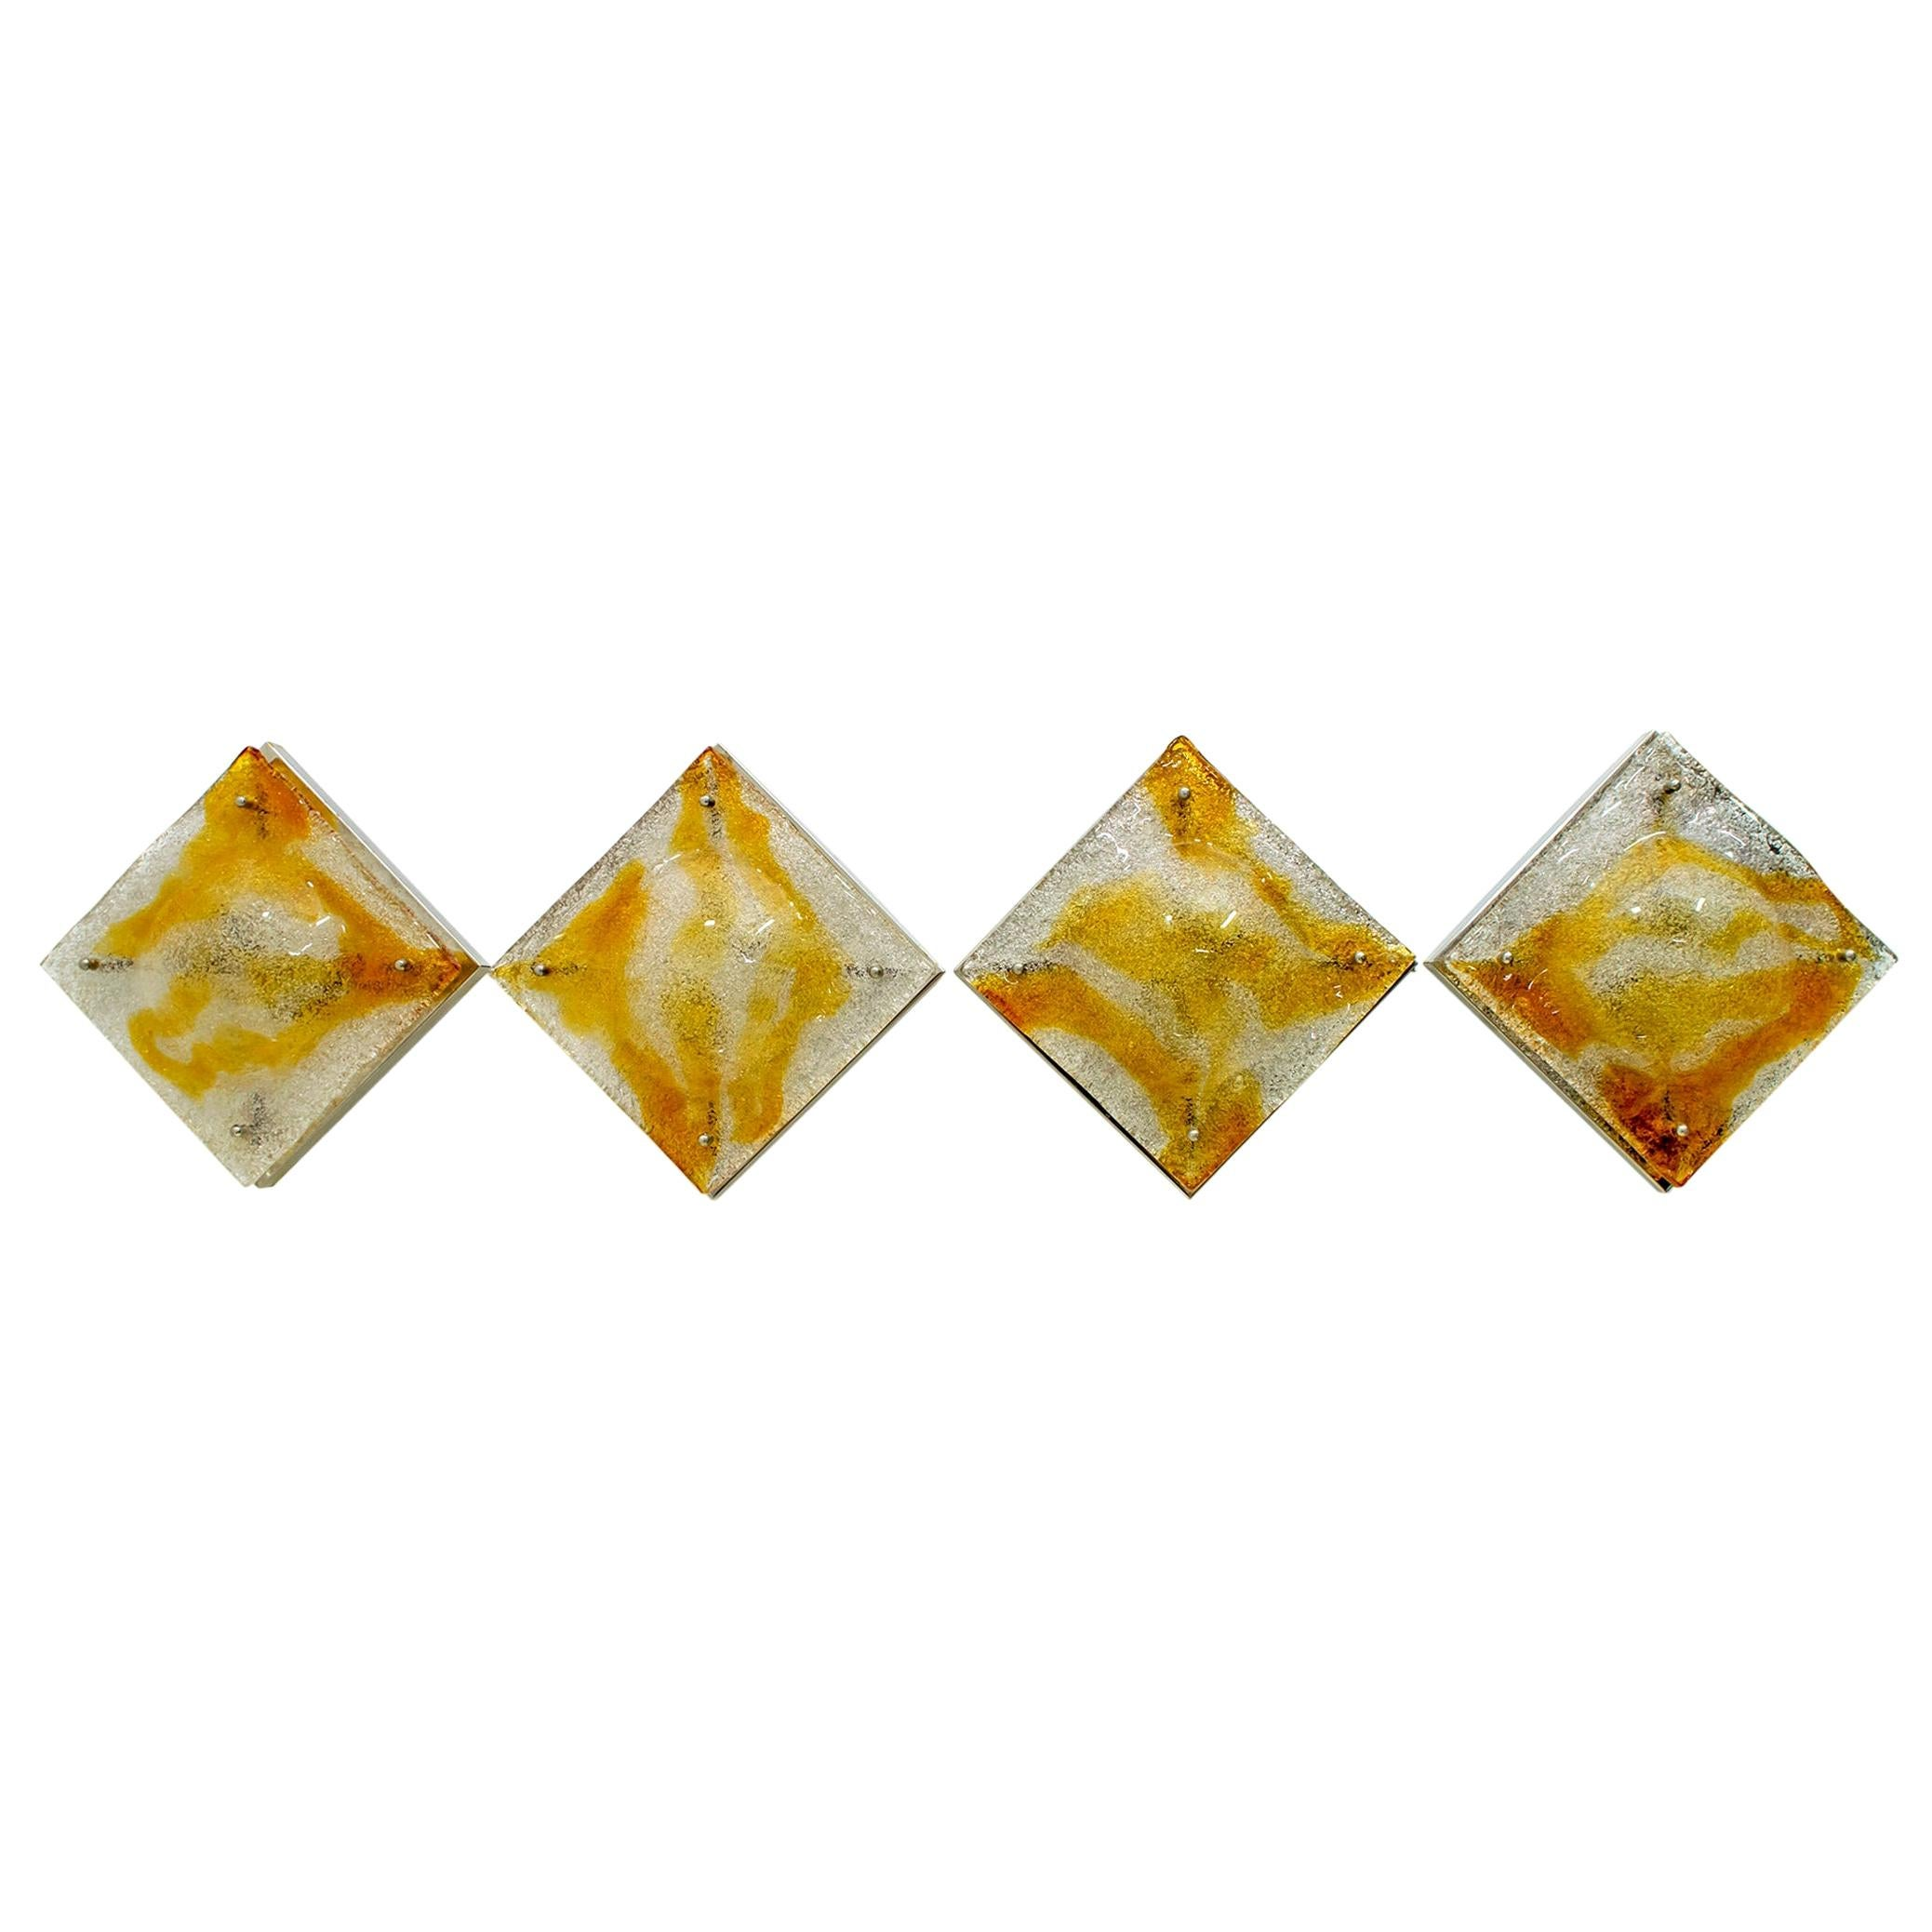 Four of Mazzega Mid-Century Modern Steel and Murano Glass Italian Sconces, 1960s